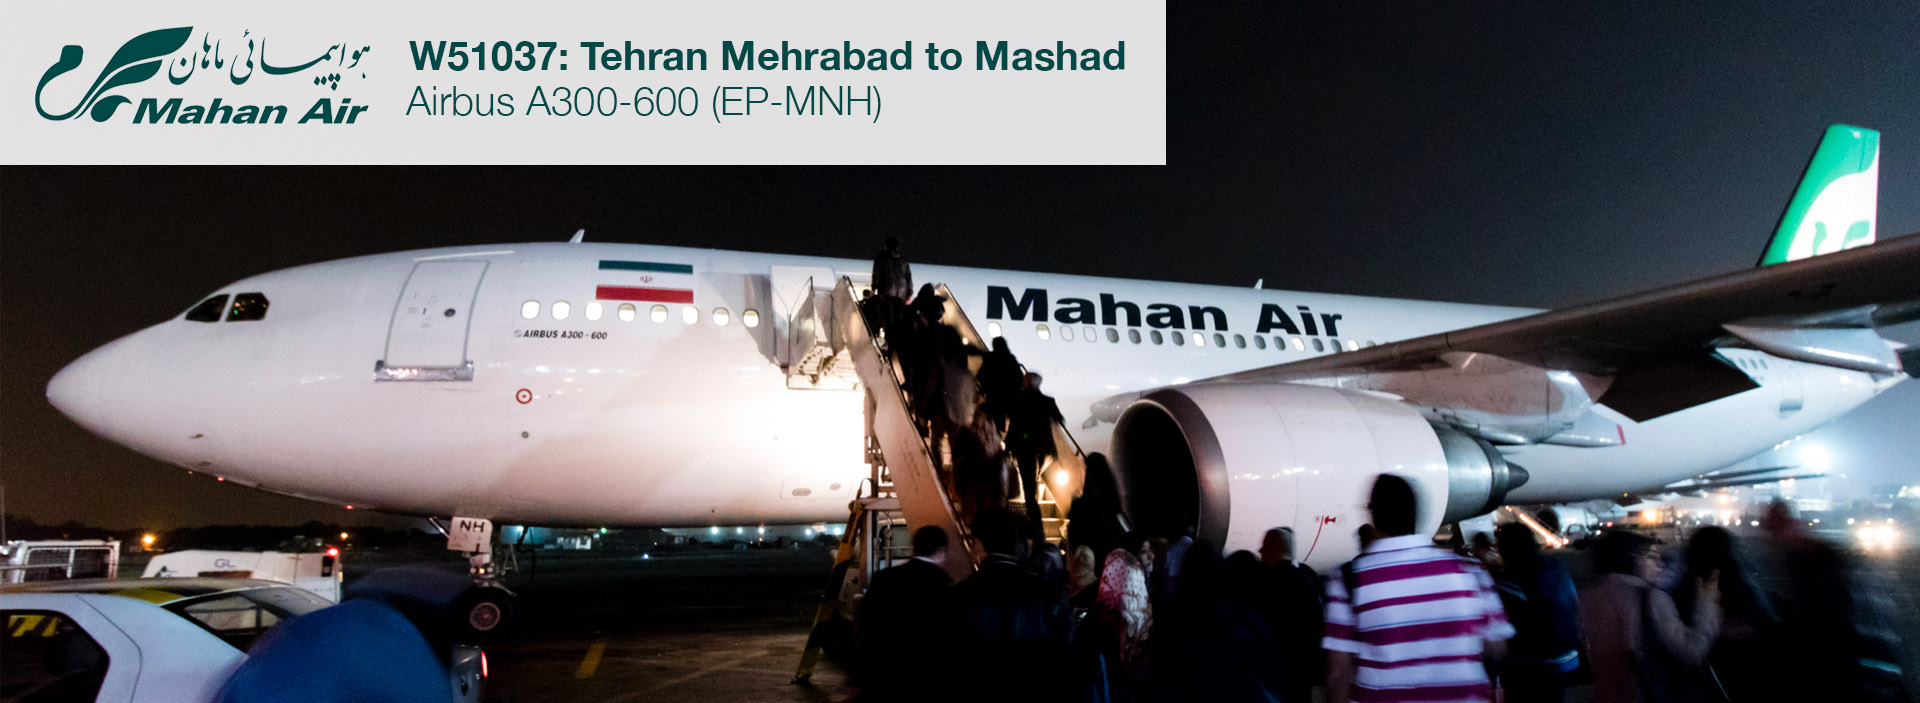 Flight Report: Mahan Air A300-600 from Tehran to Mashad